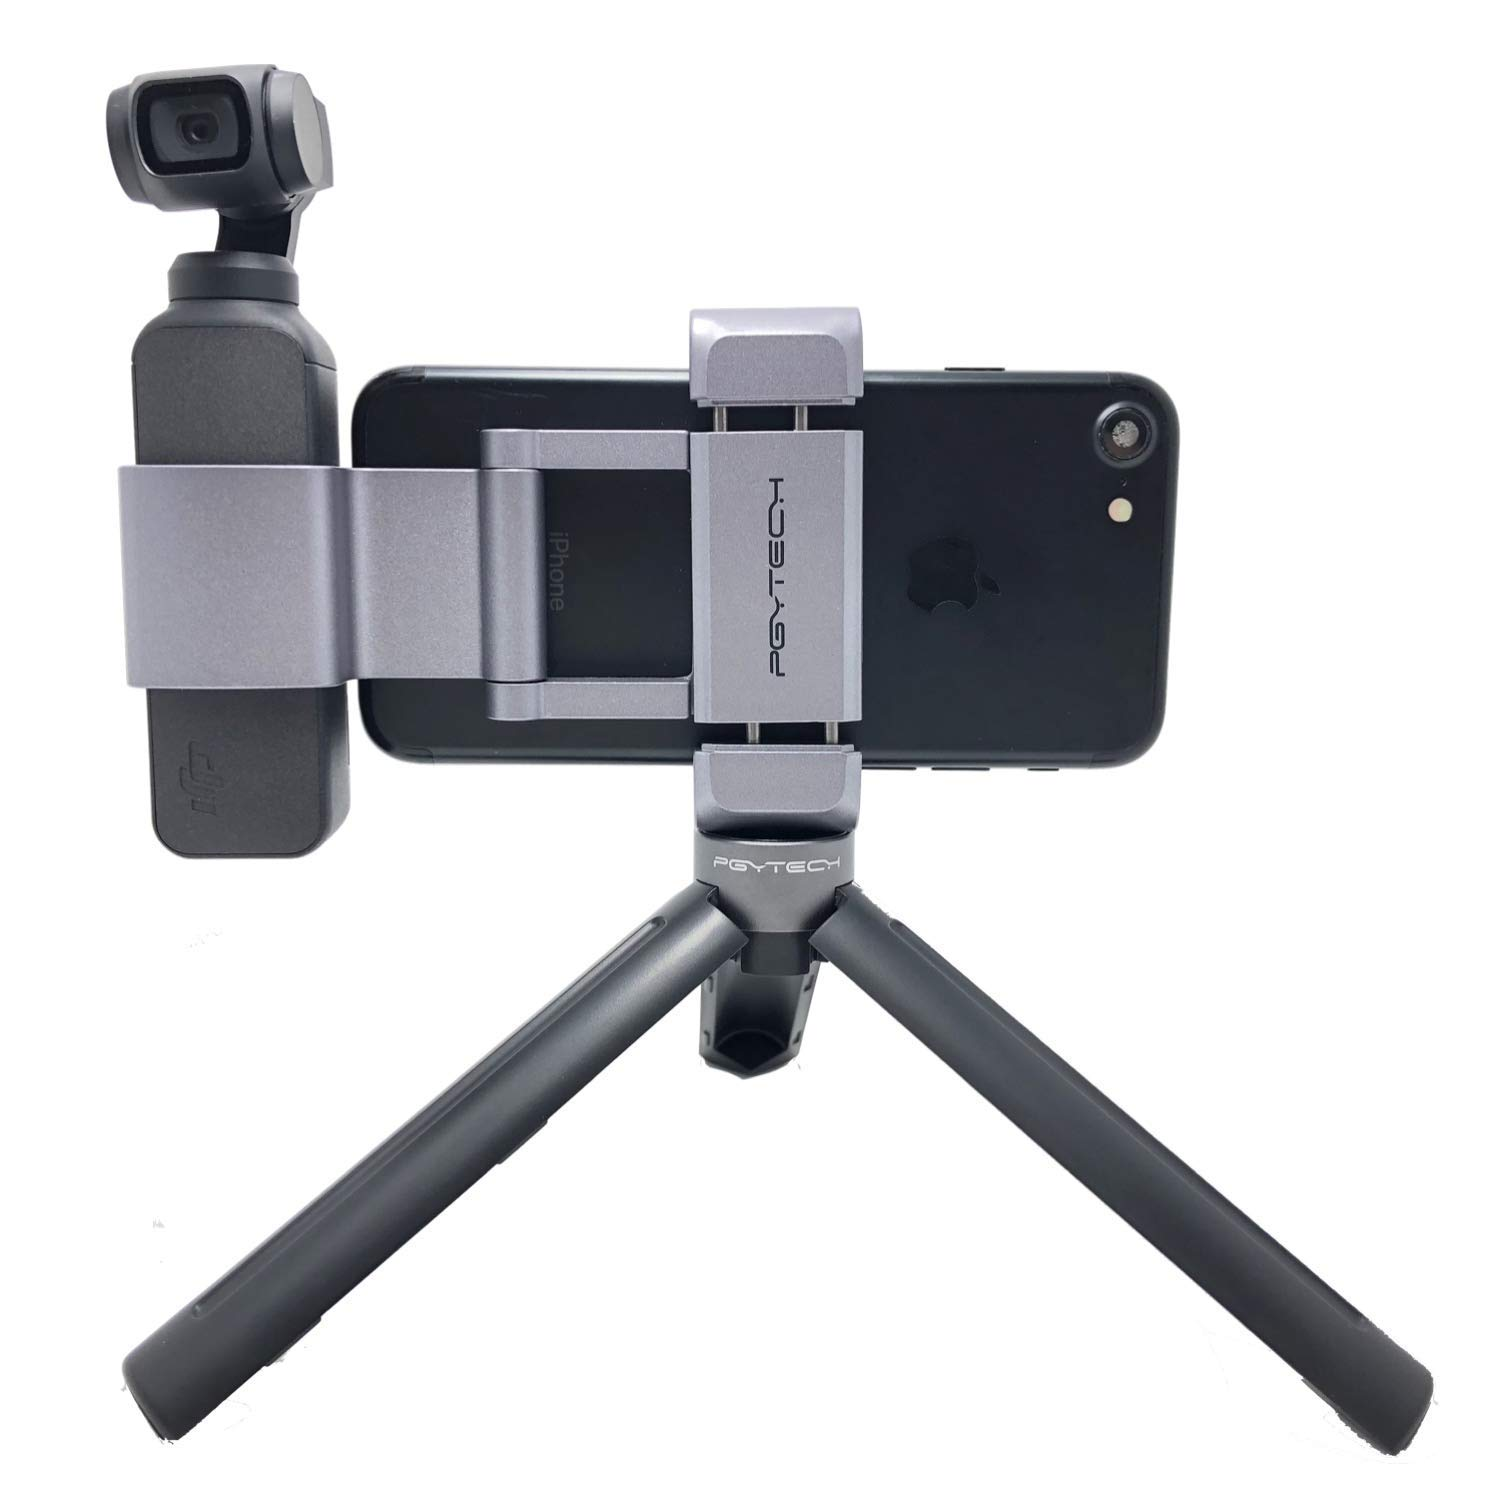 PGYTECH OSMO Pocket Phone Holder+ Expansion Accessories with Tripod Mini Compatible with DJI OSMO Pocket Accessories